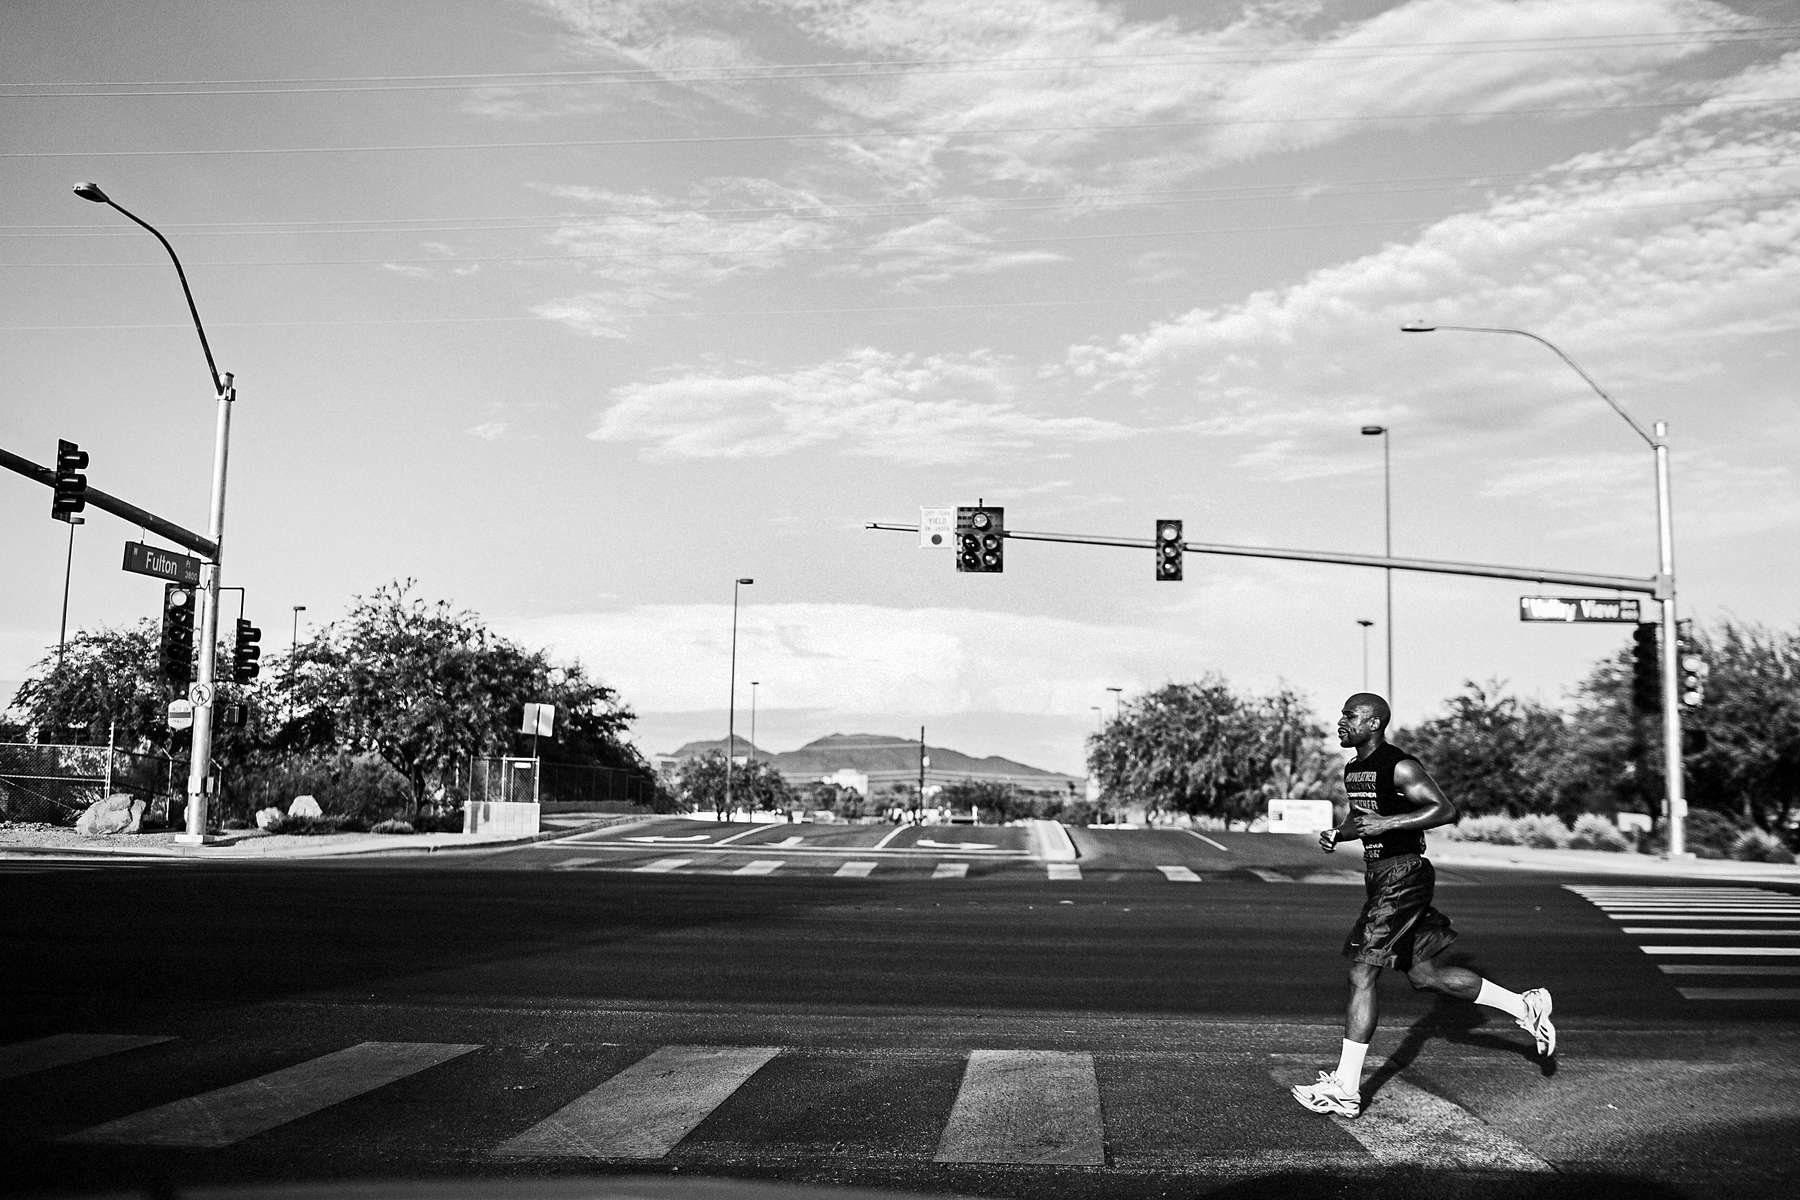 LAS VEGAS, NV - JULY 27: On a searing 106-degree Vegas evening, Mayweather takes to the streets for a six-mile run. (Photo by Benjamin Lowy/Reportage by Getty Images)